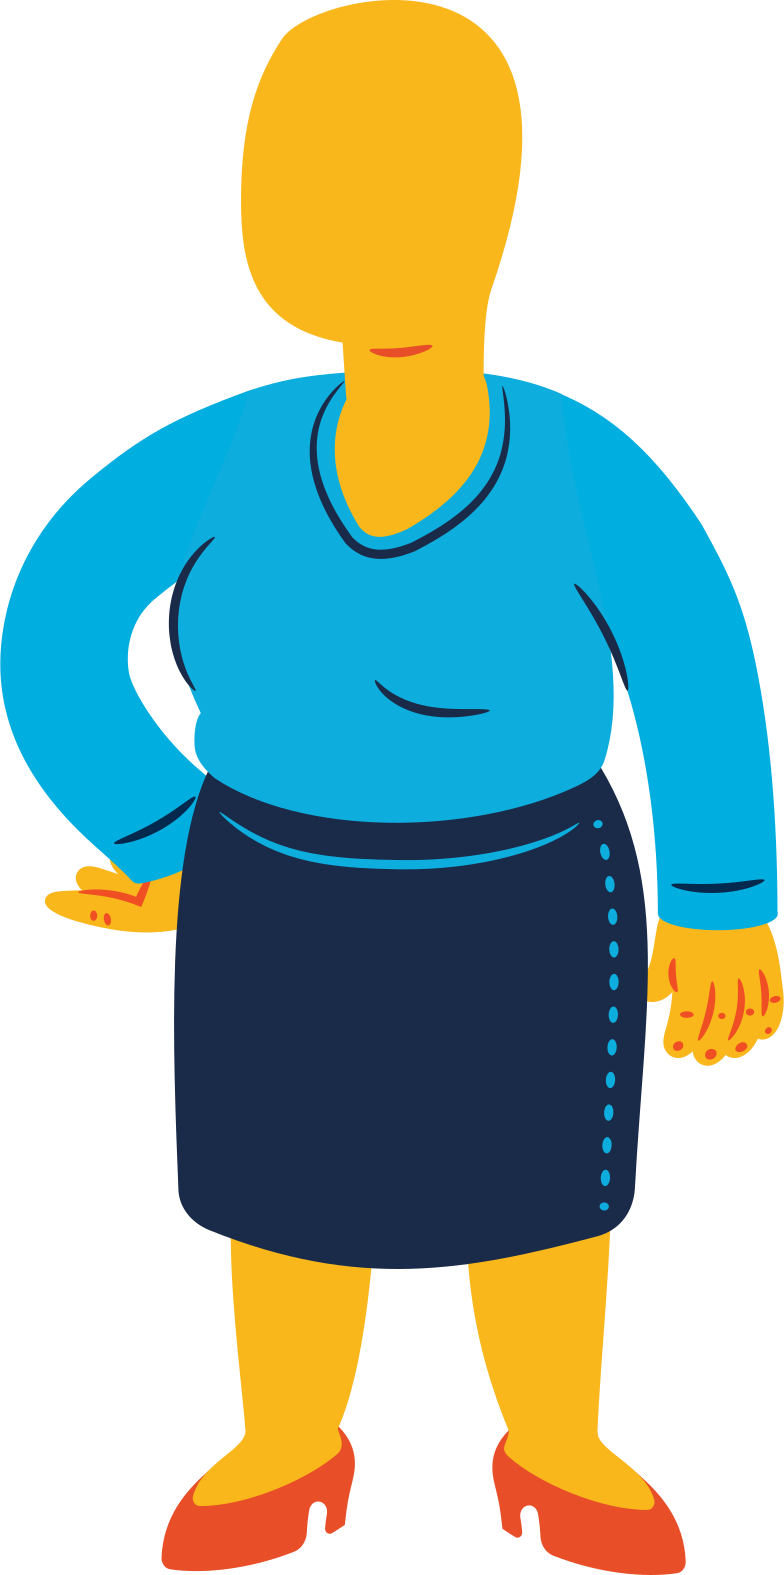 style chubby woman standing Vector images in PNG and SVG | Icons8 Illustrations